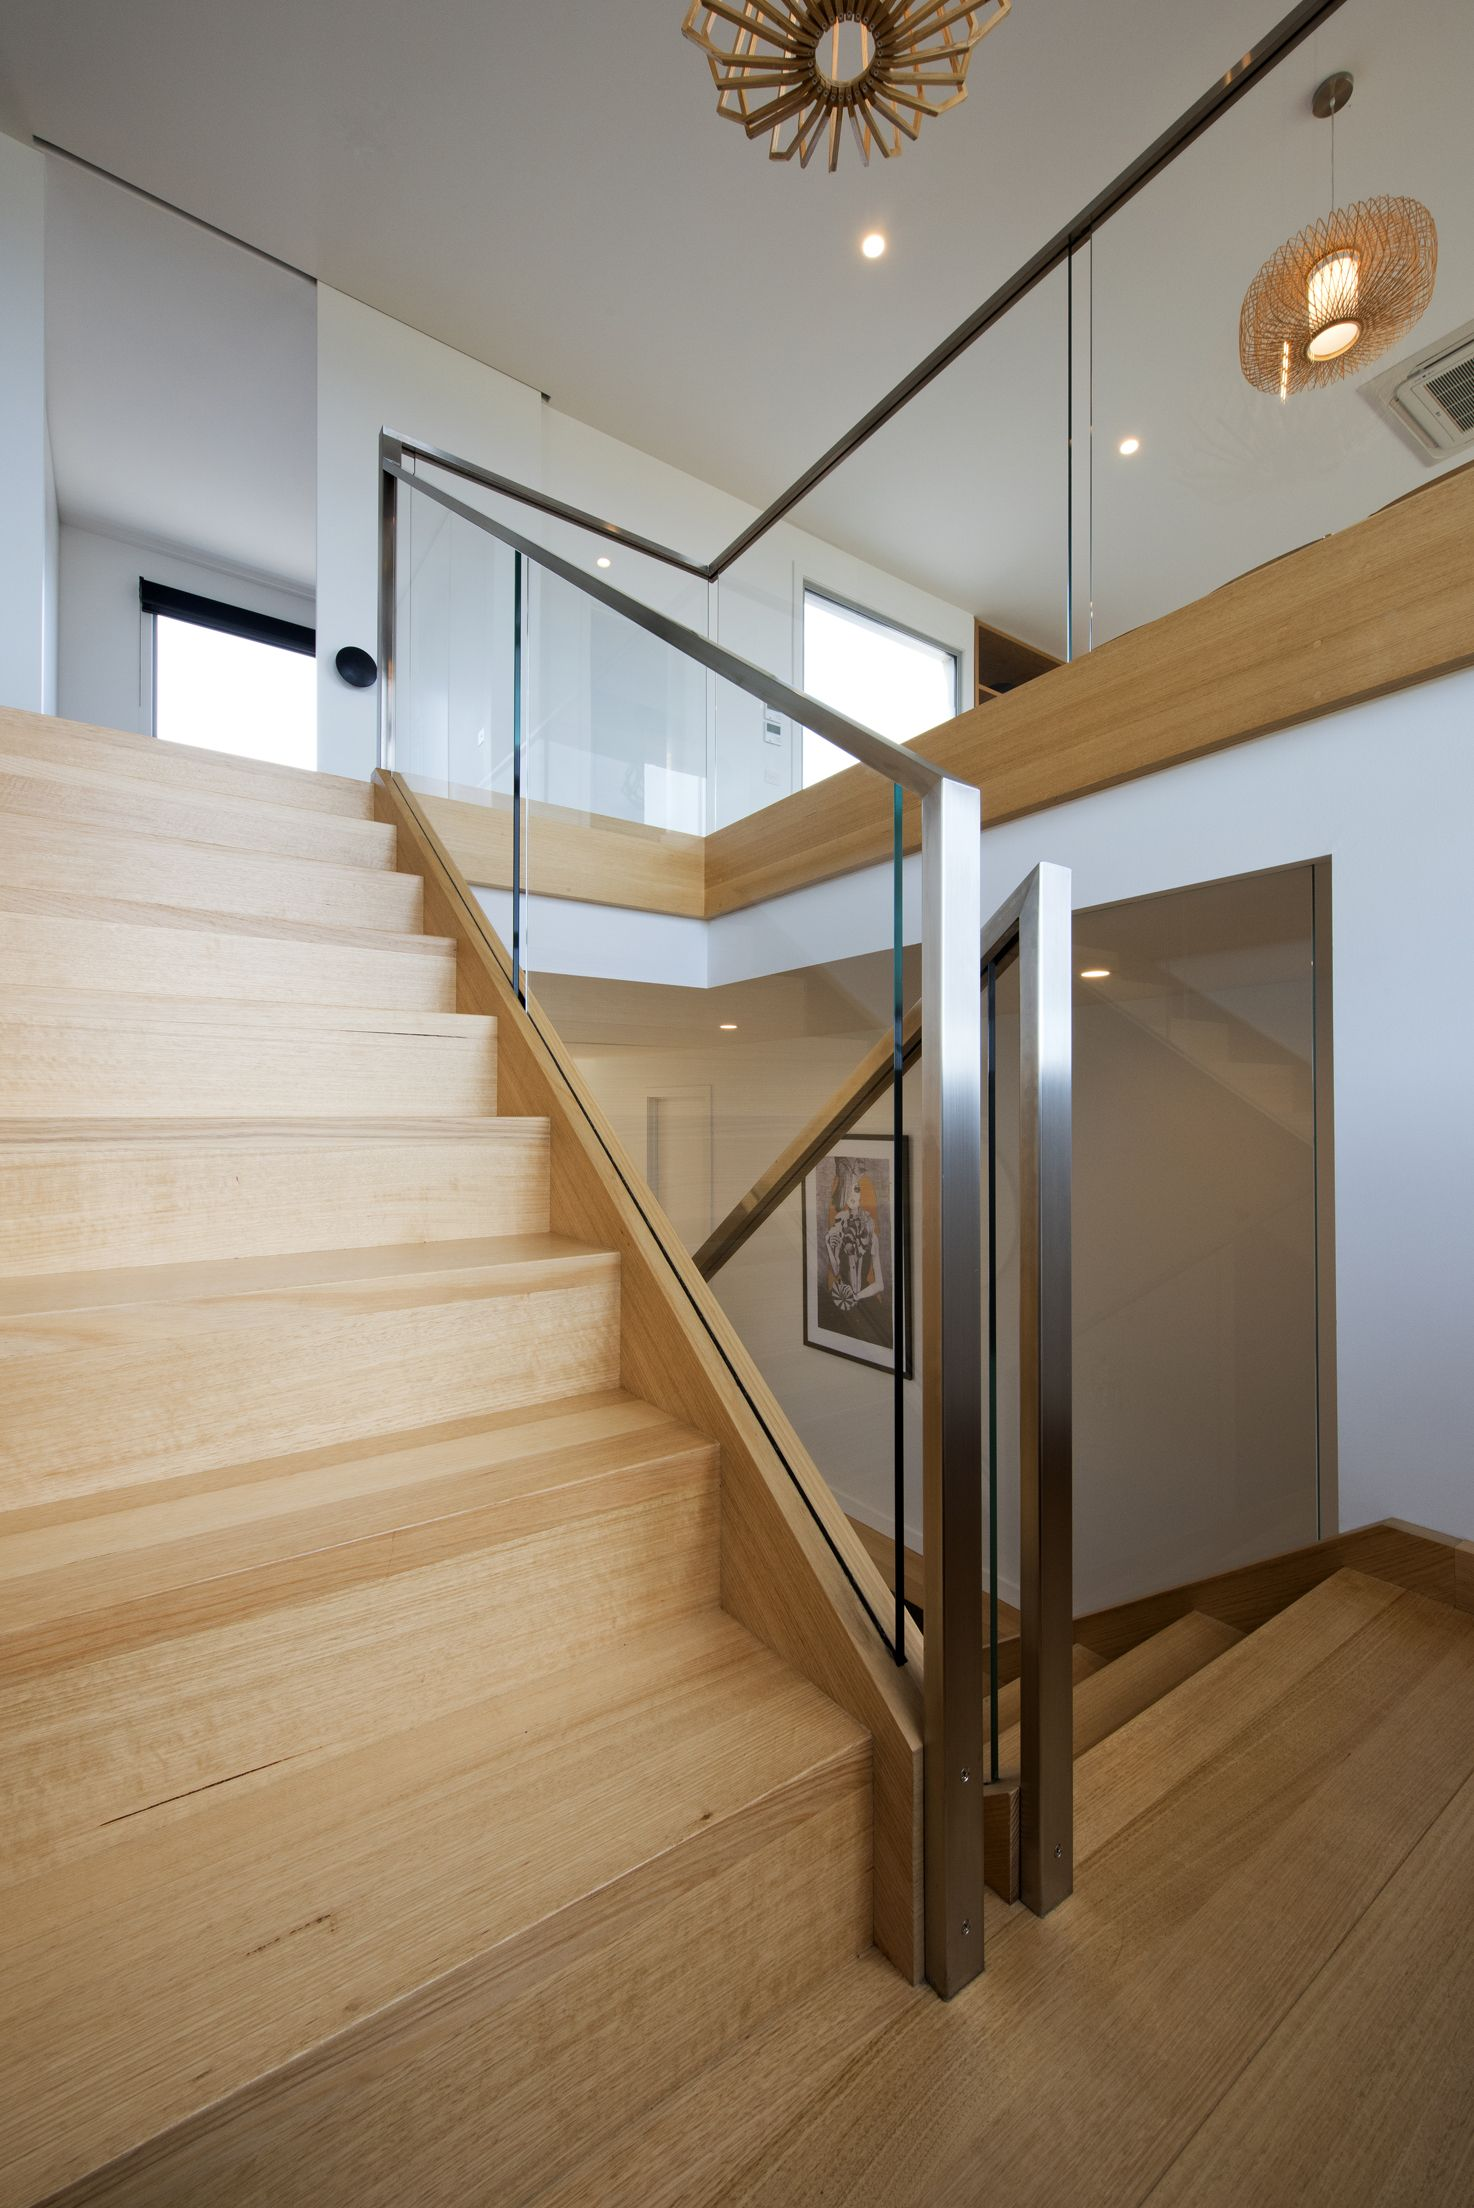 Stairs | Victorian Ash | Stained | Glass Balustrade | Stainless Steel  Handrail | Open Stair